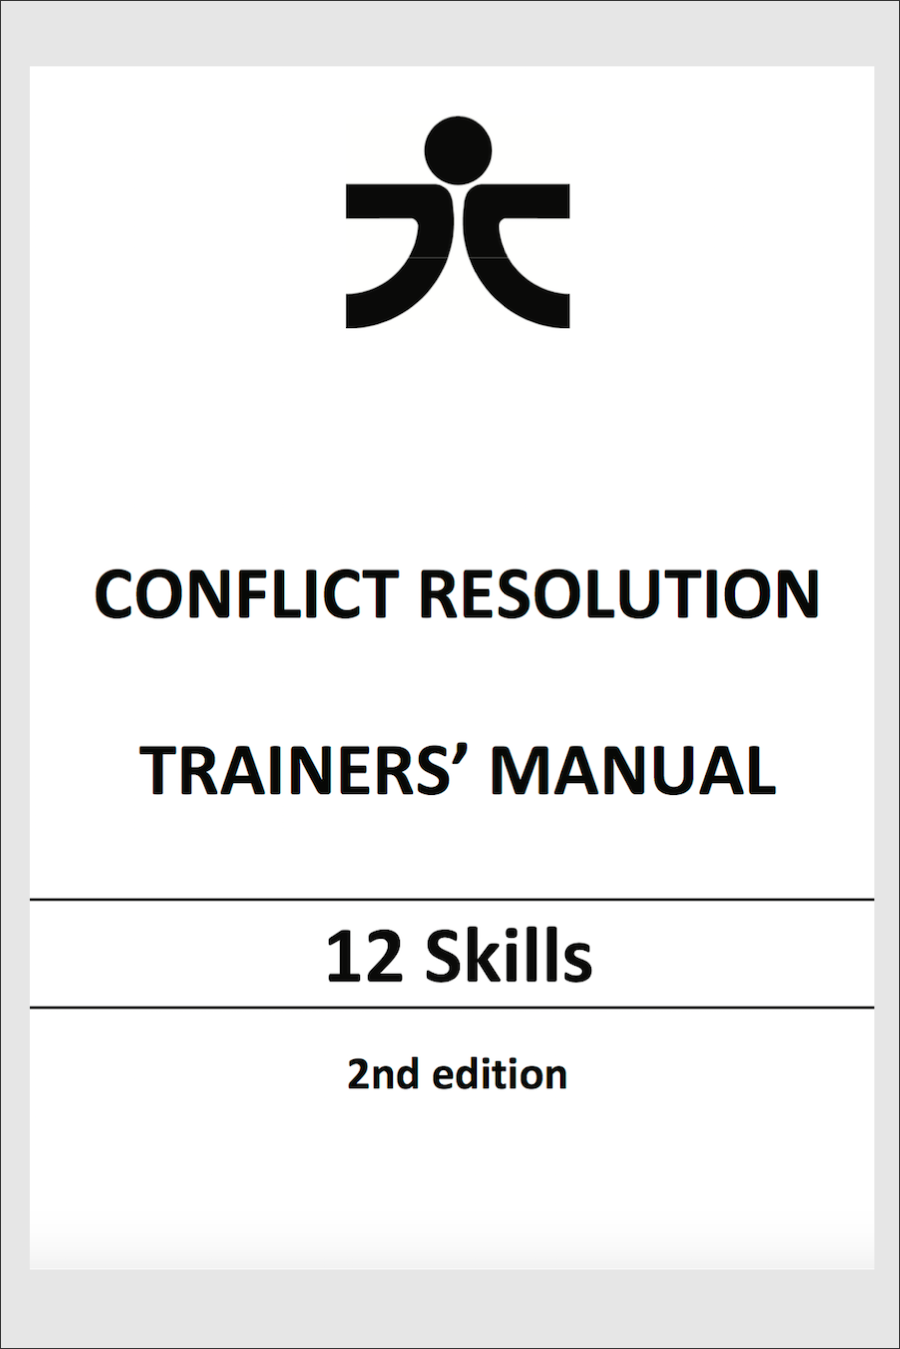 Conflict Resolution Trainers' Manual - 12 Skills